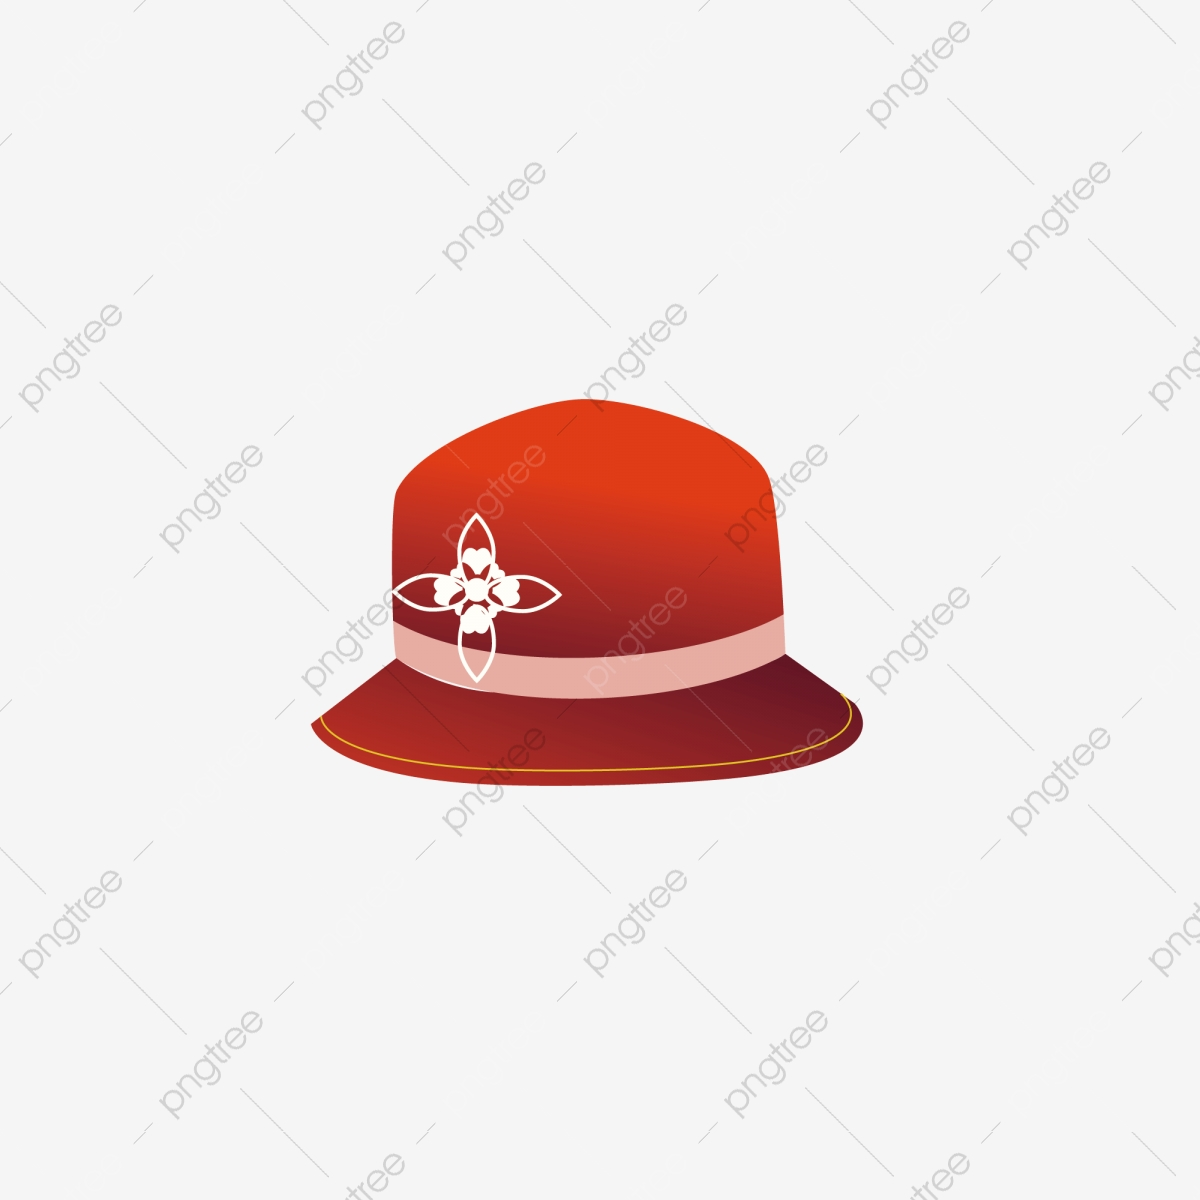 Hat, Indian Chief Hat, Southern Asiafeather PNG Transparent Image